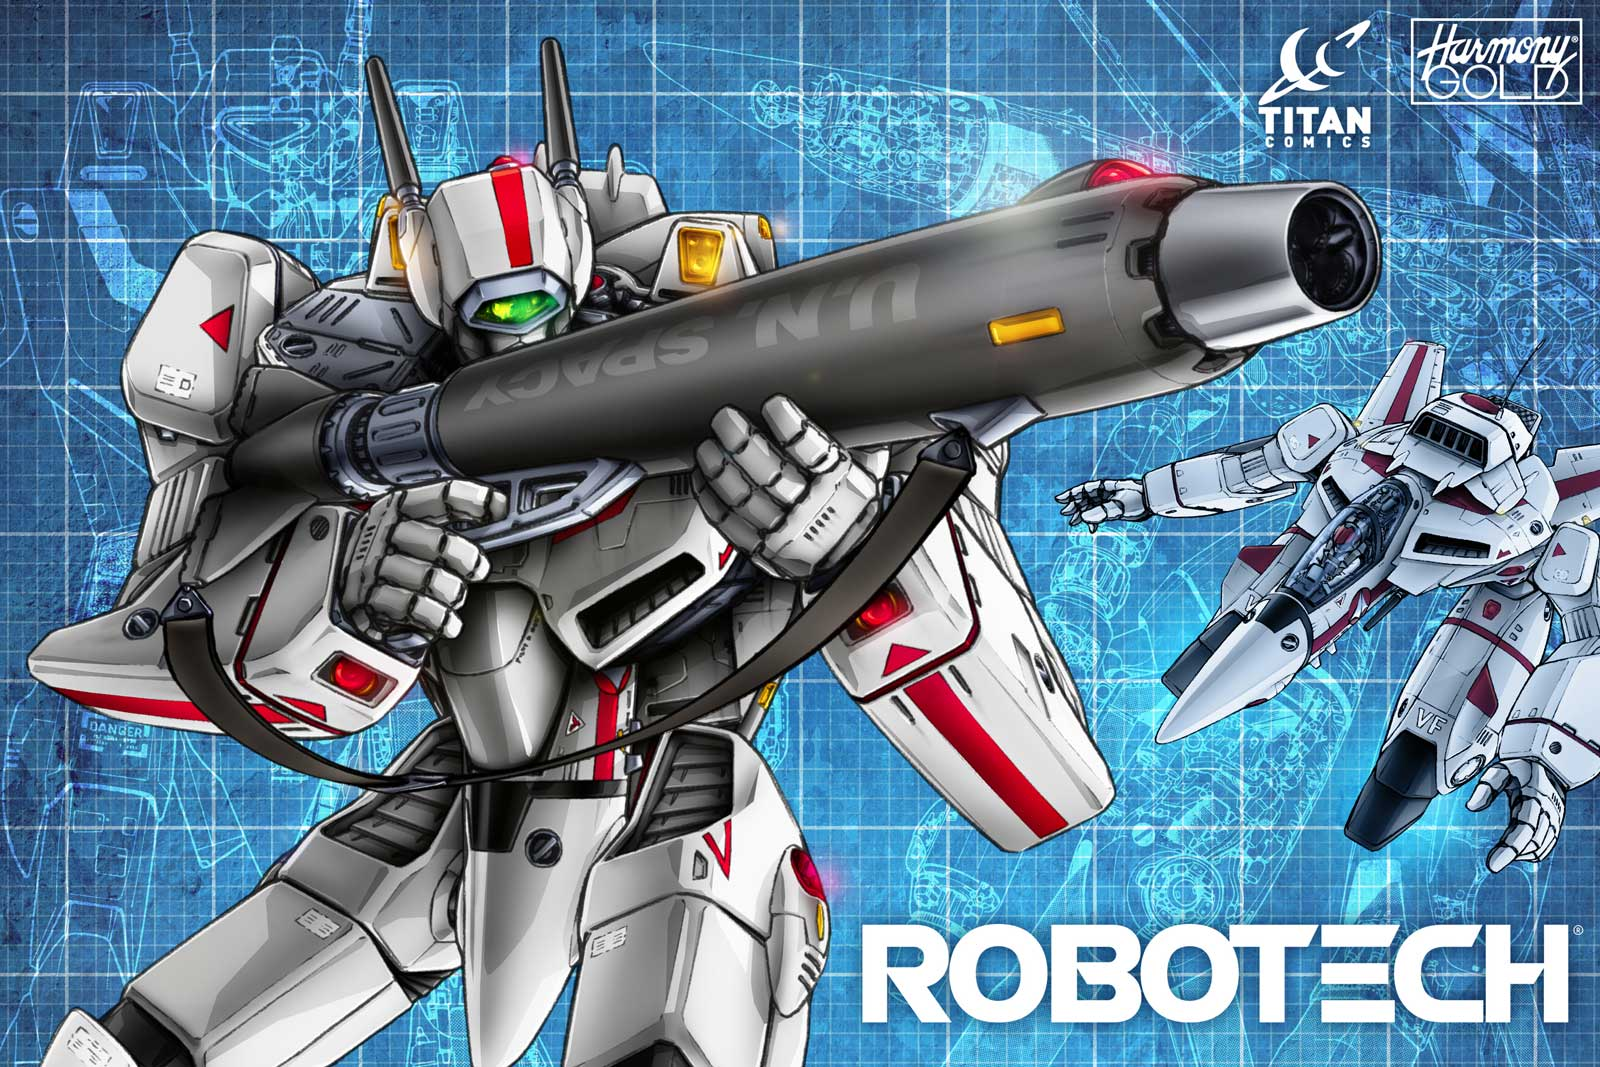 Robotech and Titan Comics Promo